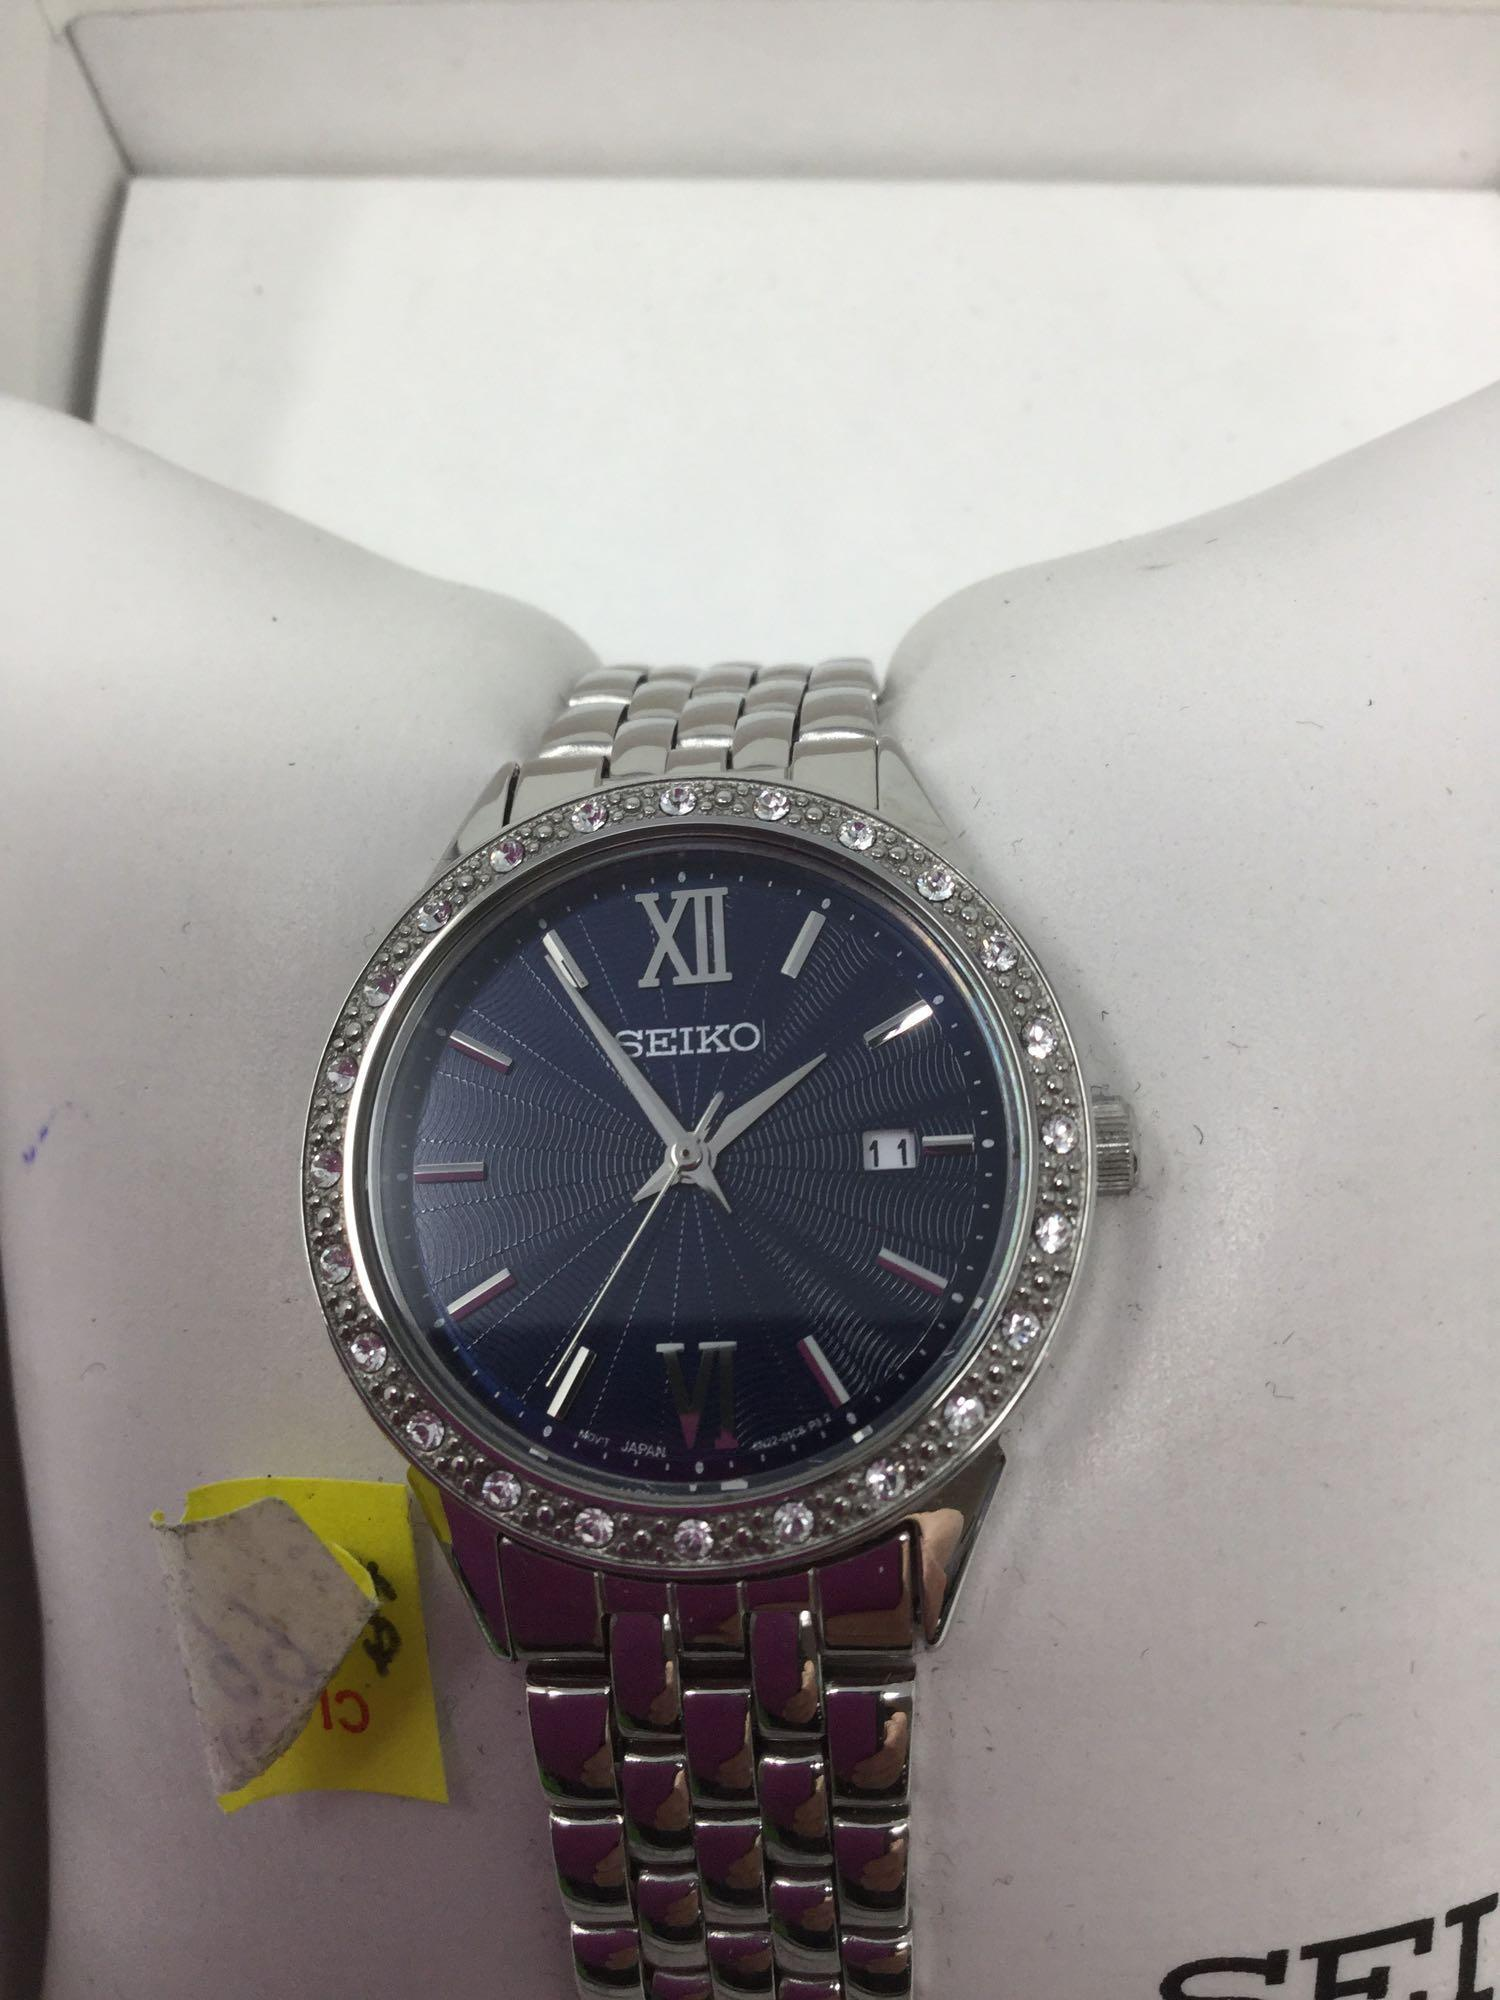 Lot 20 - Seiko Watch - Silver tone band, Crystals around Fave, and Blue Face